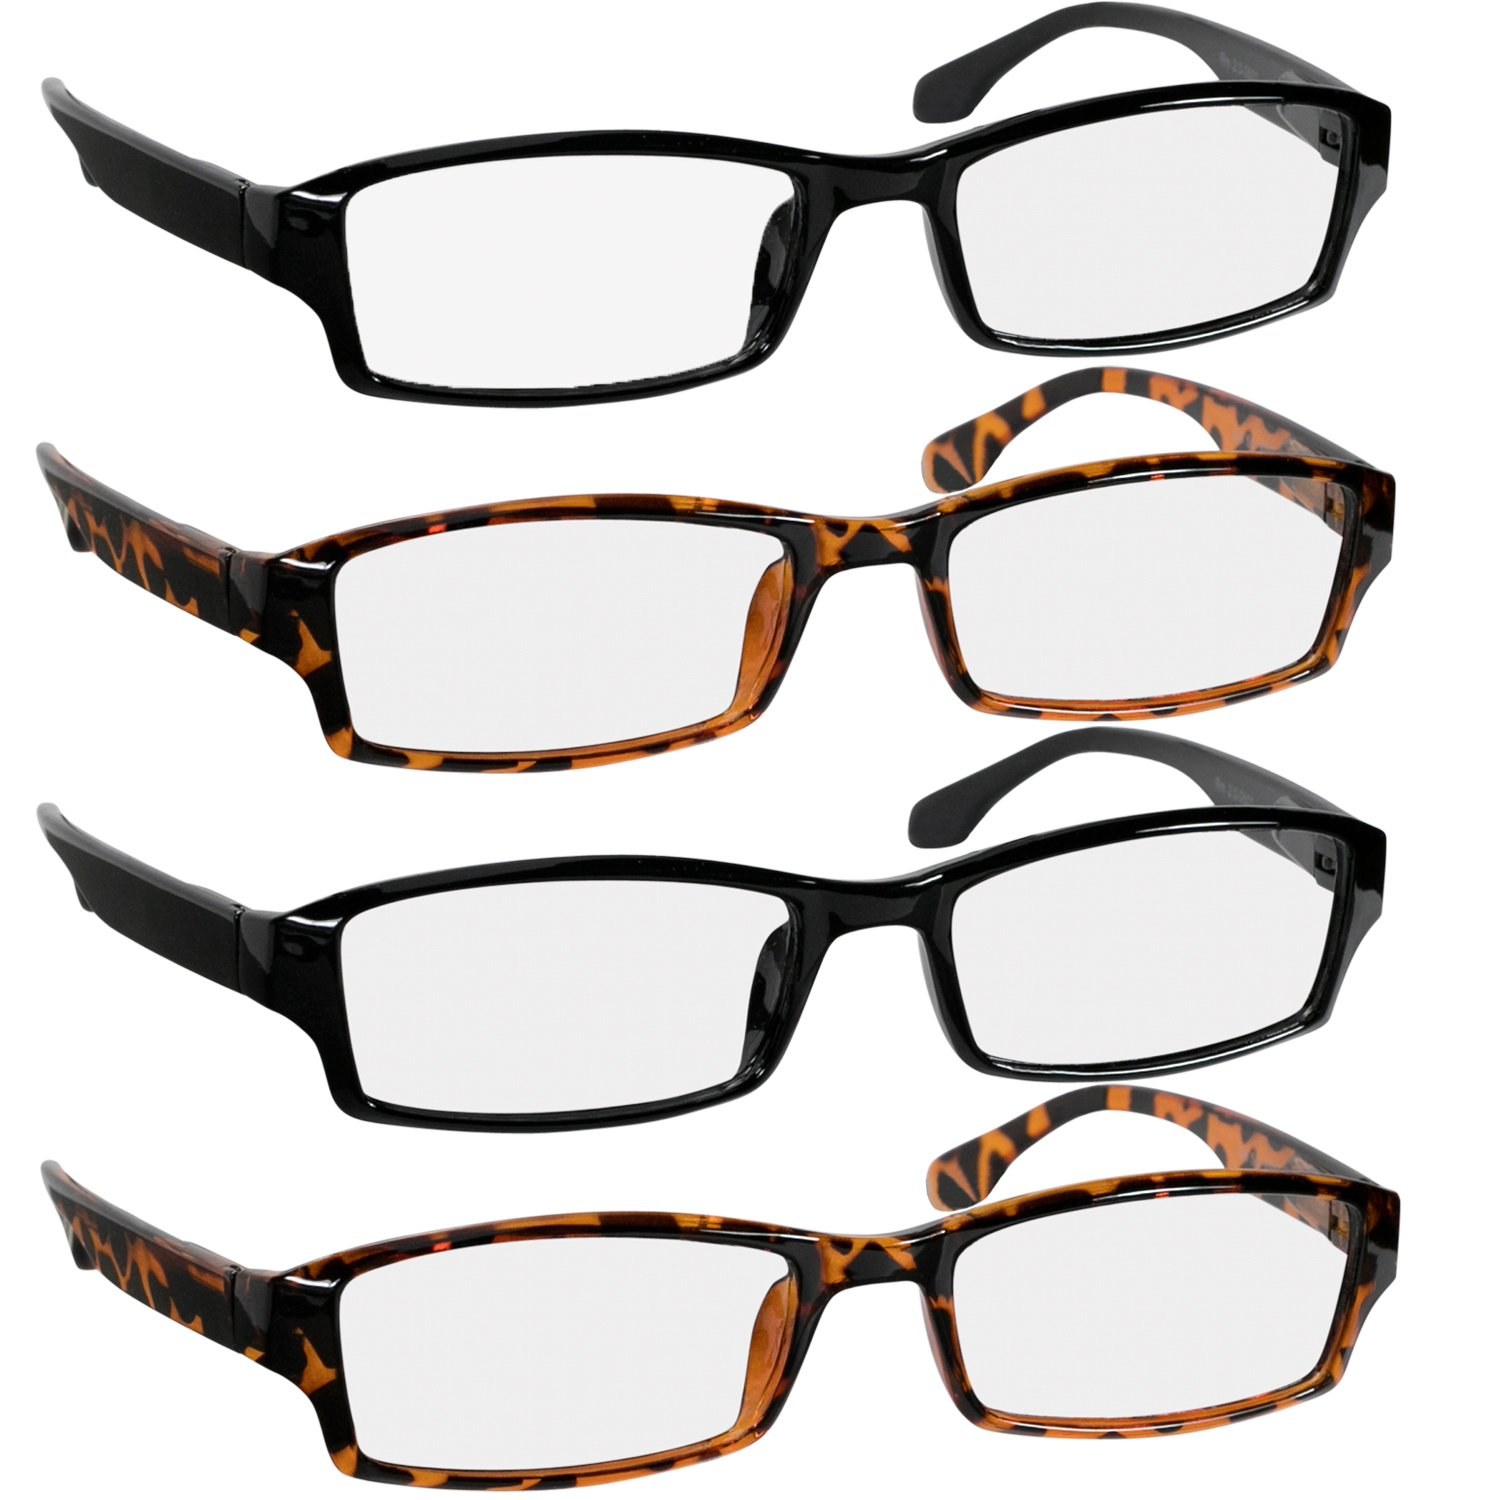 Reading Glasses 3.0 2 Black & 2 Tortoise Fashion Readers for Men & Women - Spring Arms & Dura-Tight Screws Have a Stylish Look and Crystal Clear Vision When You Need It!